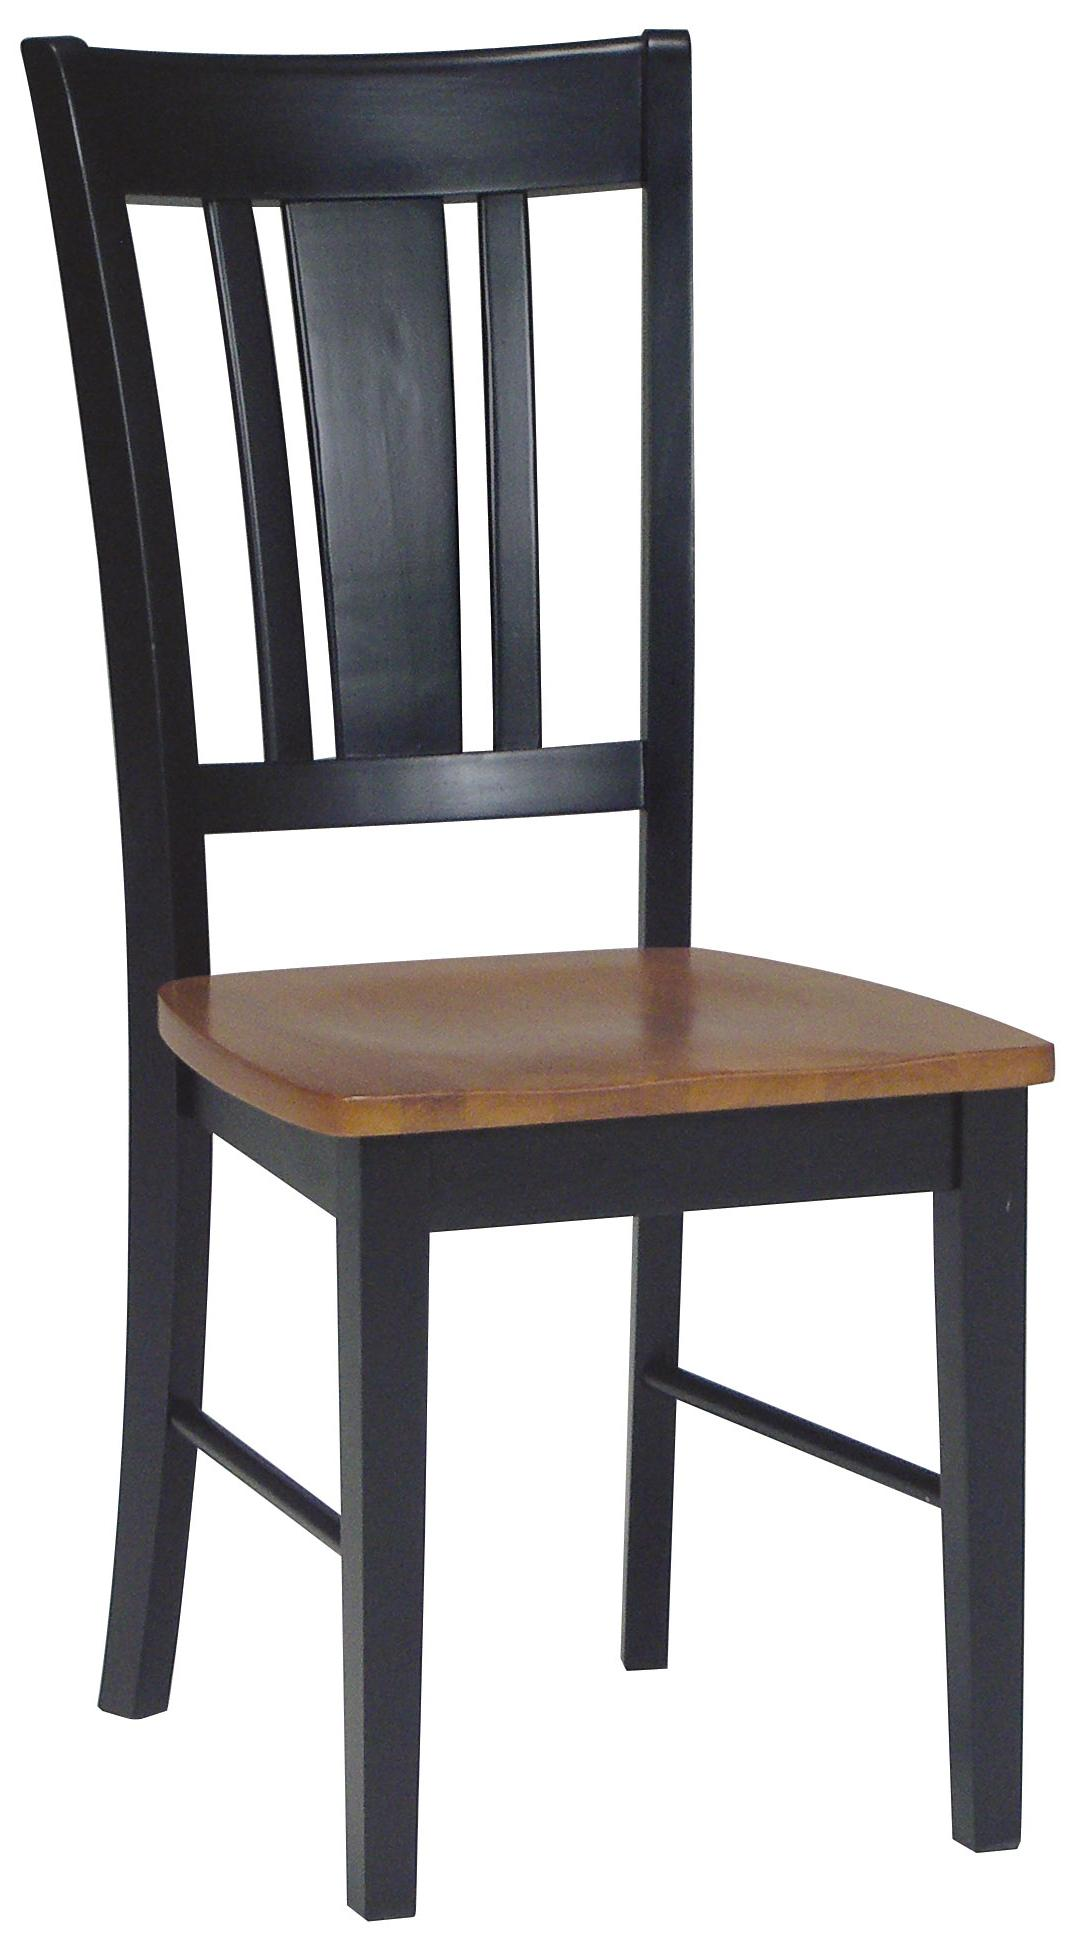 John Thomas Dining Essentials Splat Back Side Chair - Item Number: C57-10